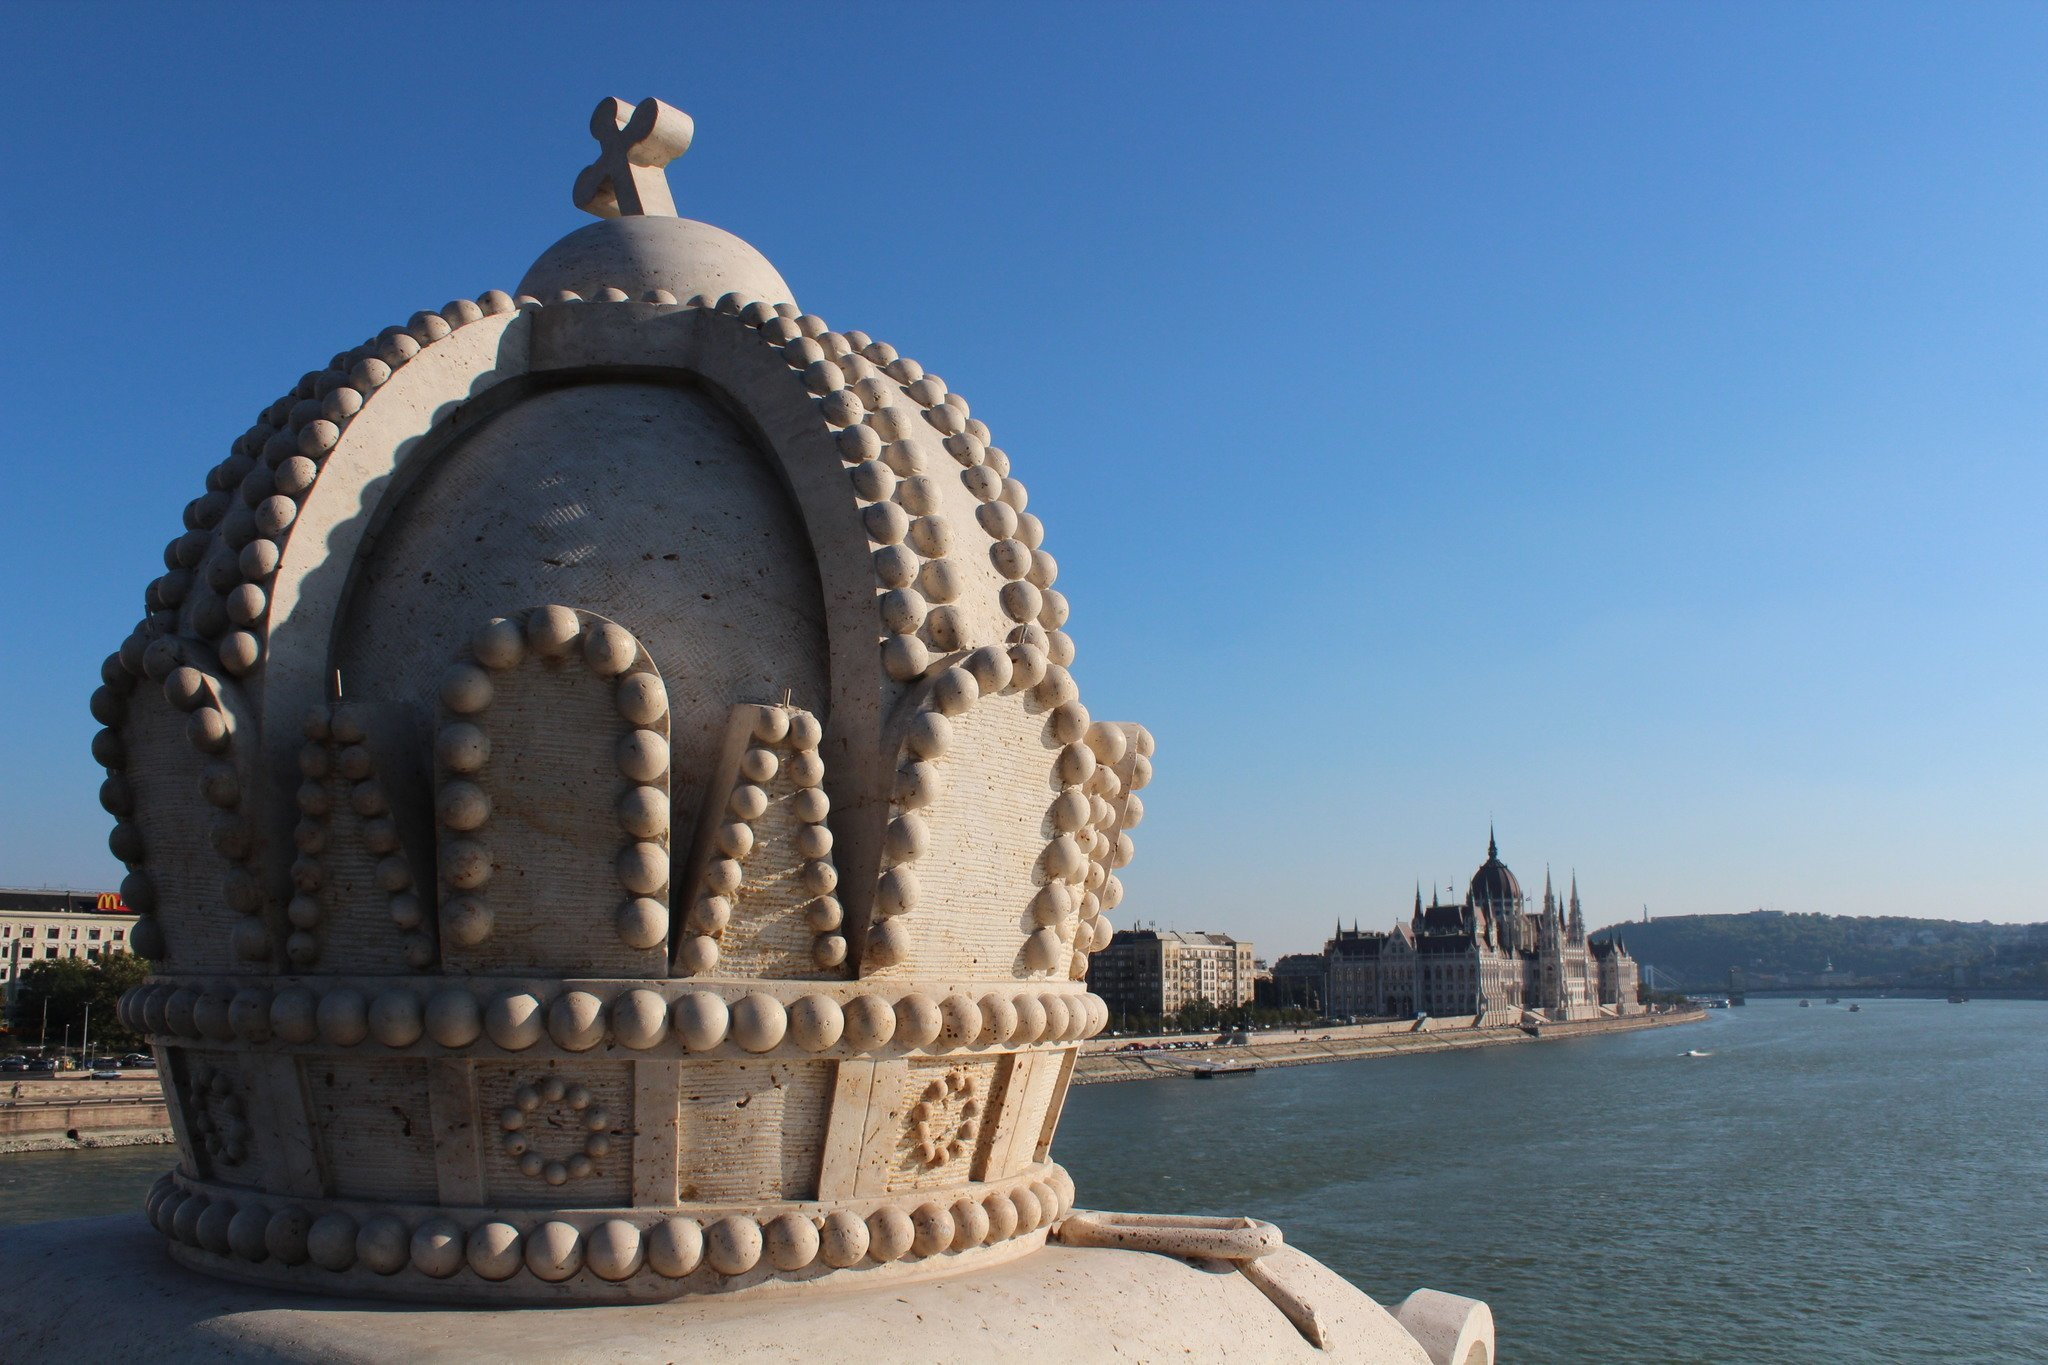 Budapest: A Fine Balance Between Price And Quality